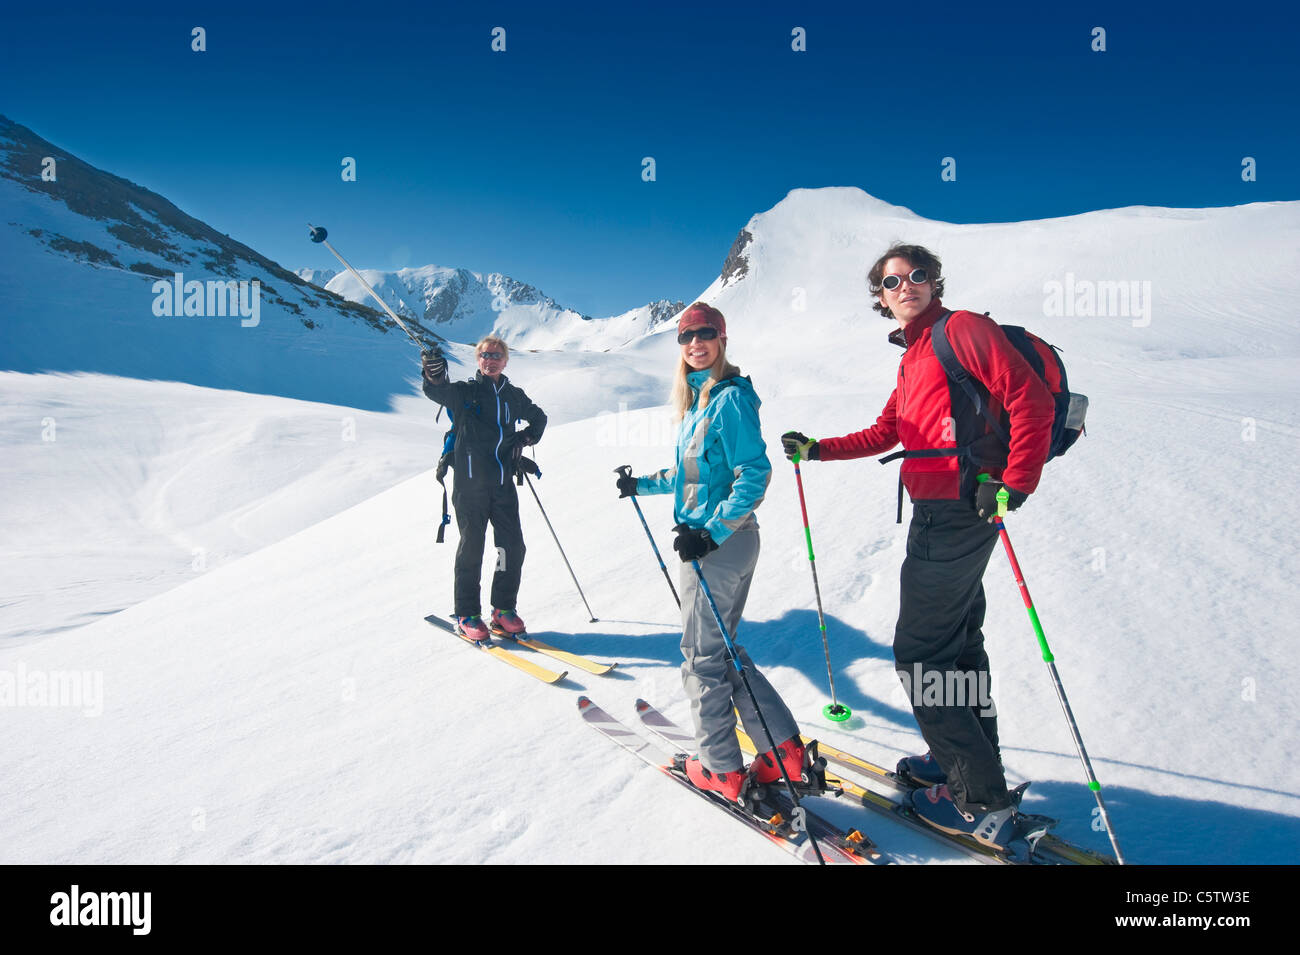 Austria, Salzbzrger Land, Altenmarkt, Zauchensee, Three persons cross country skiing in mountains - Stock Image